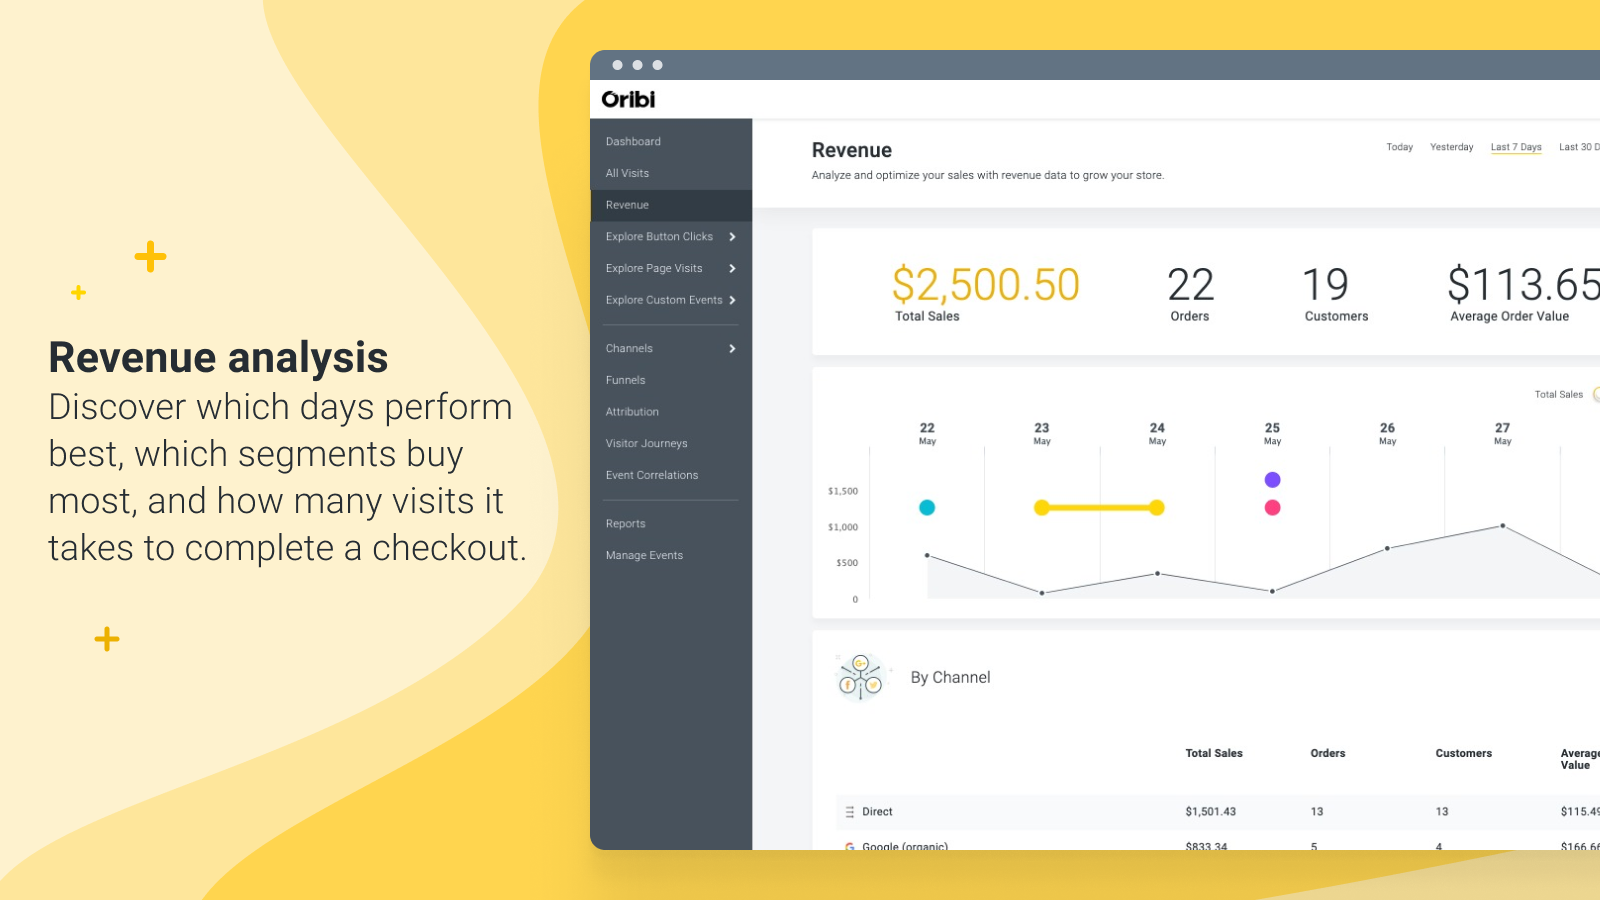 Discover which days perform best, which segments buy most.